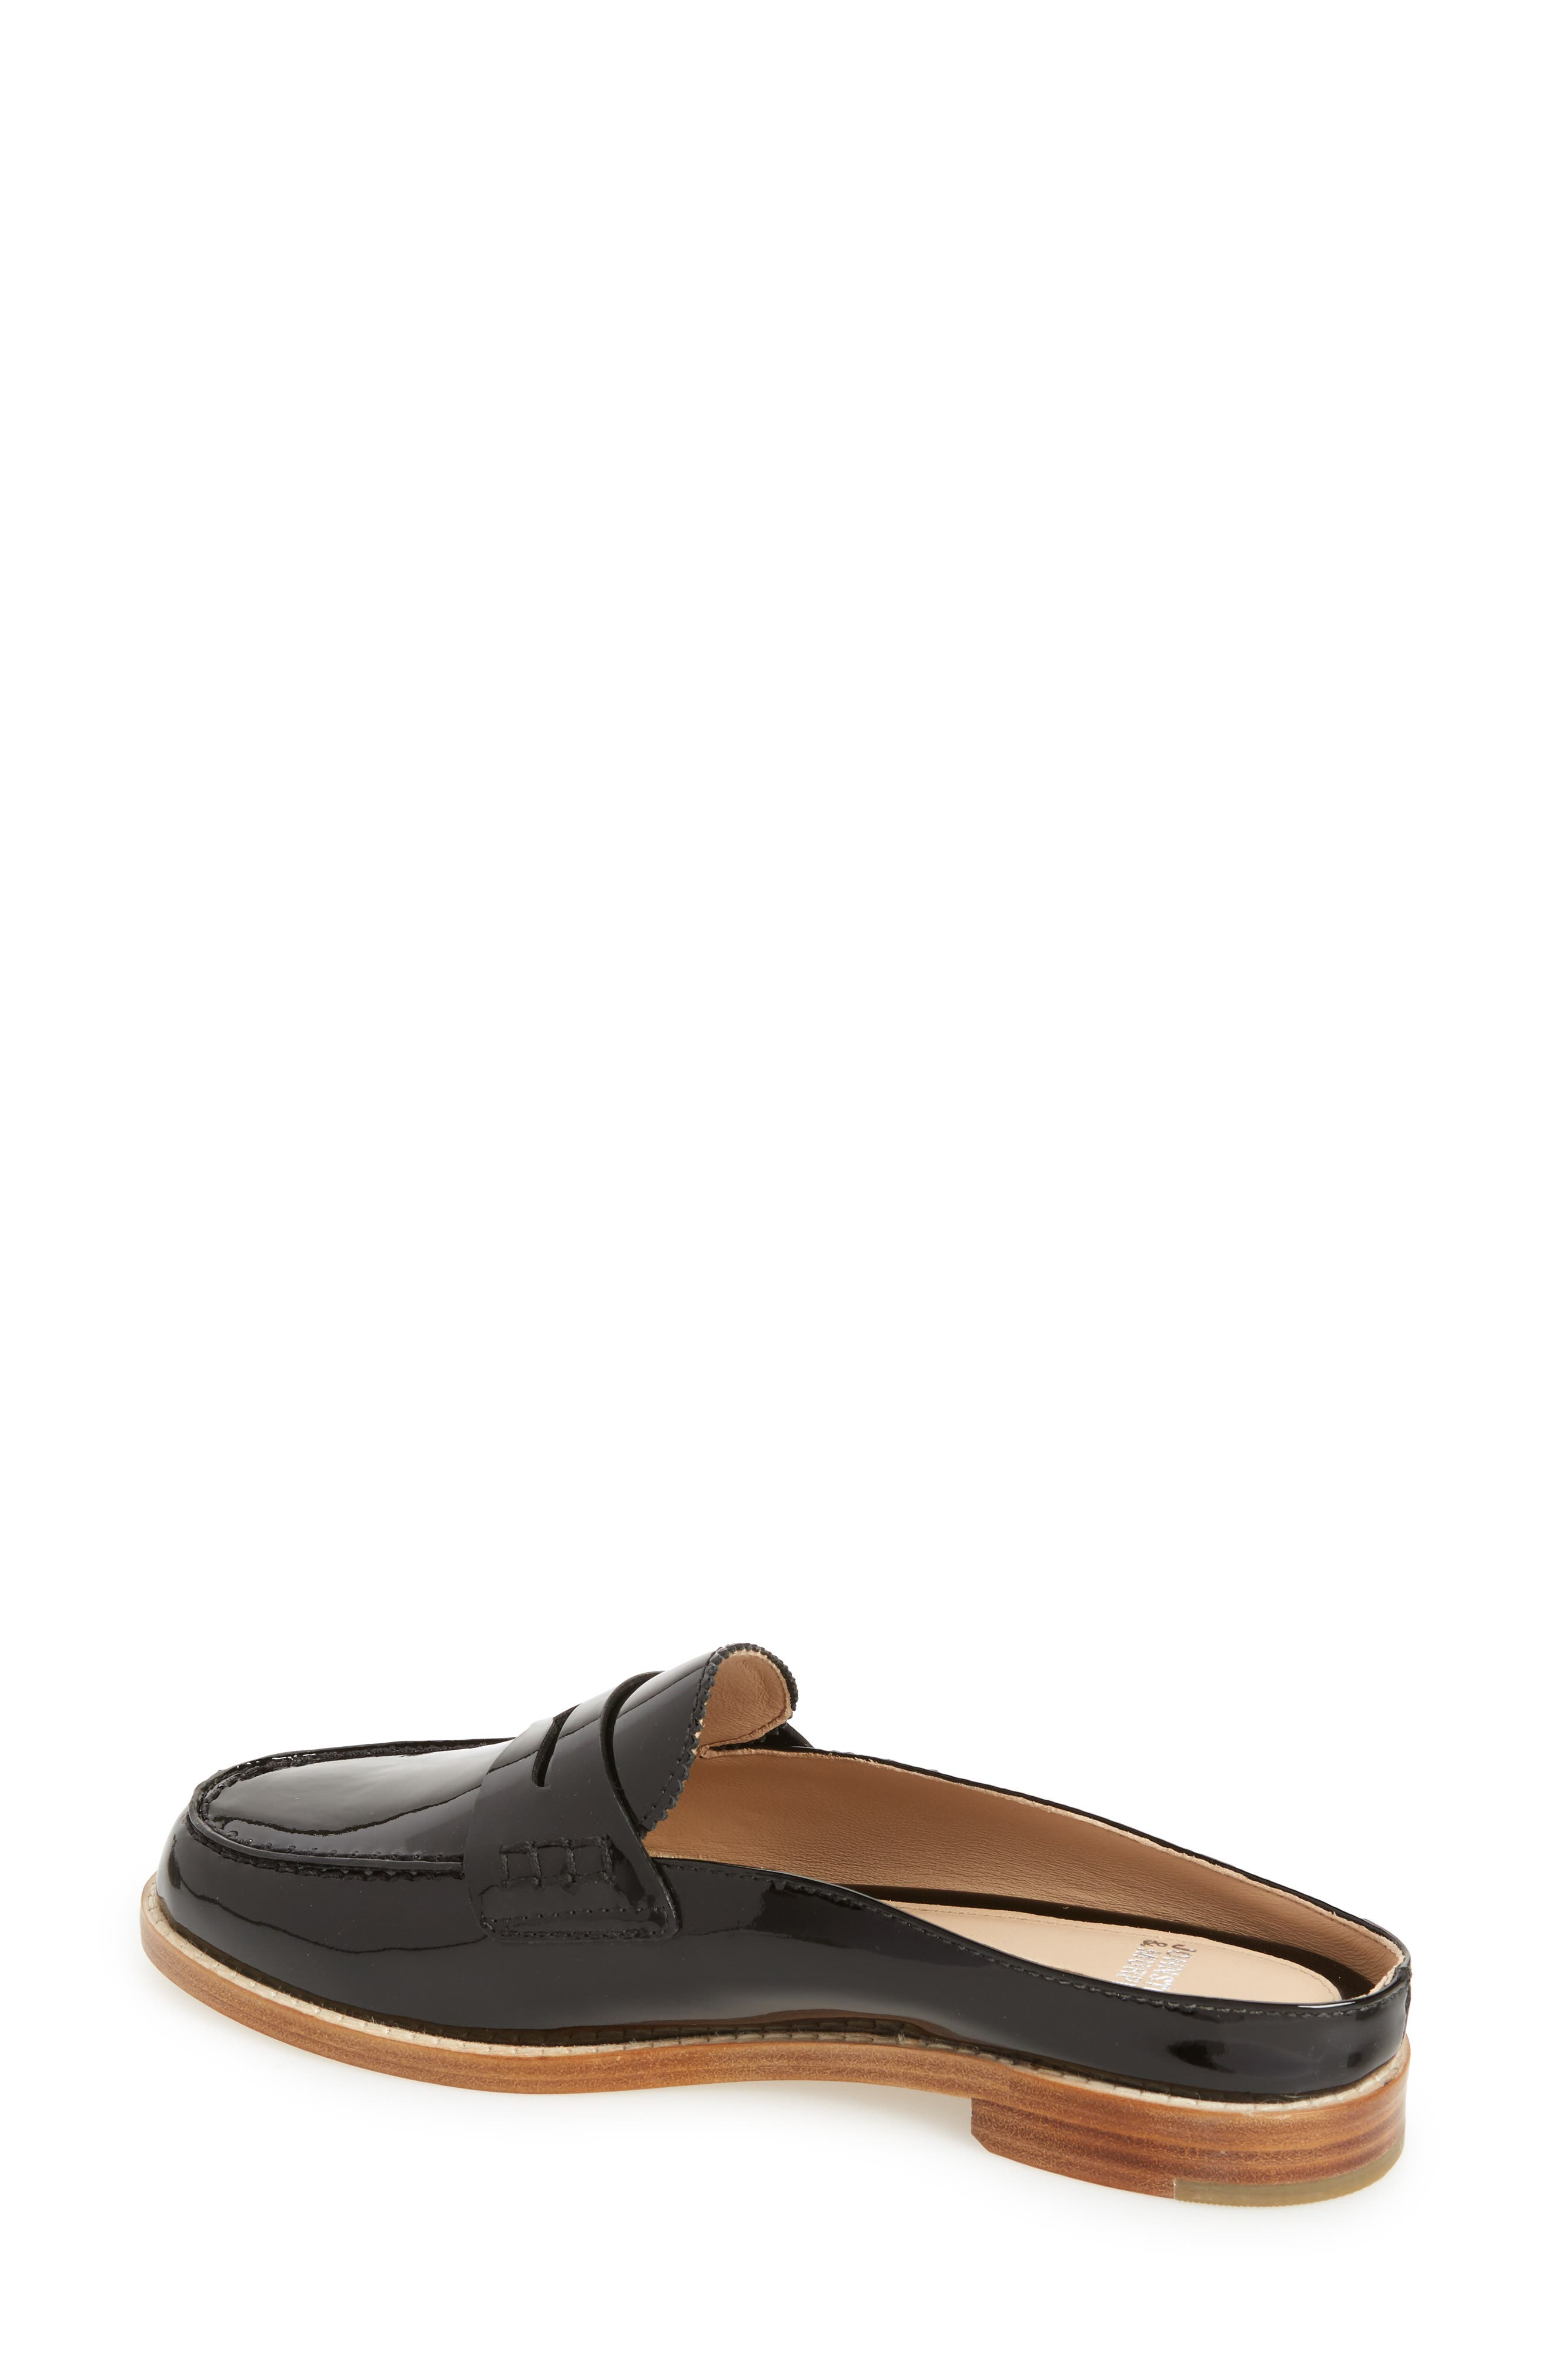 Giada Loafer Mule,                             Alternate thumbnail 2, color,                             BLACK PATENT